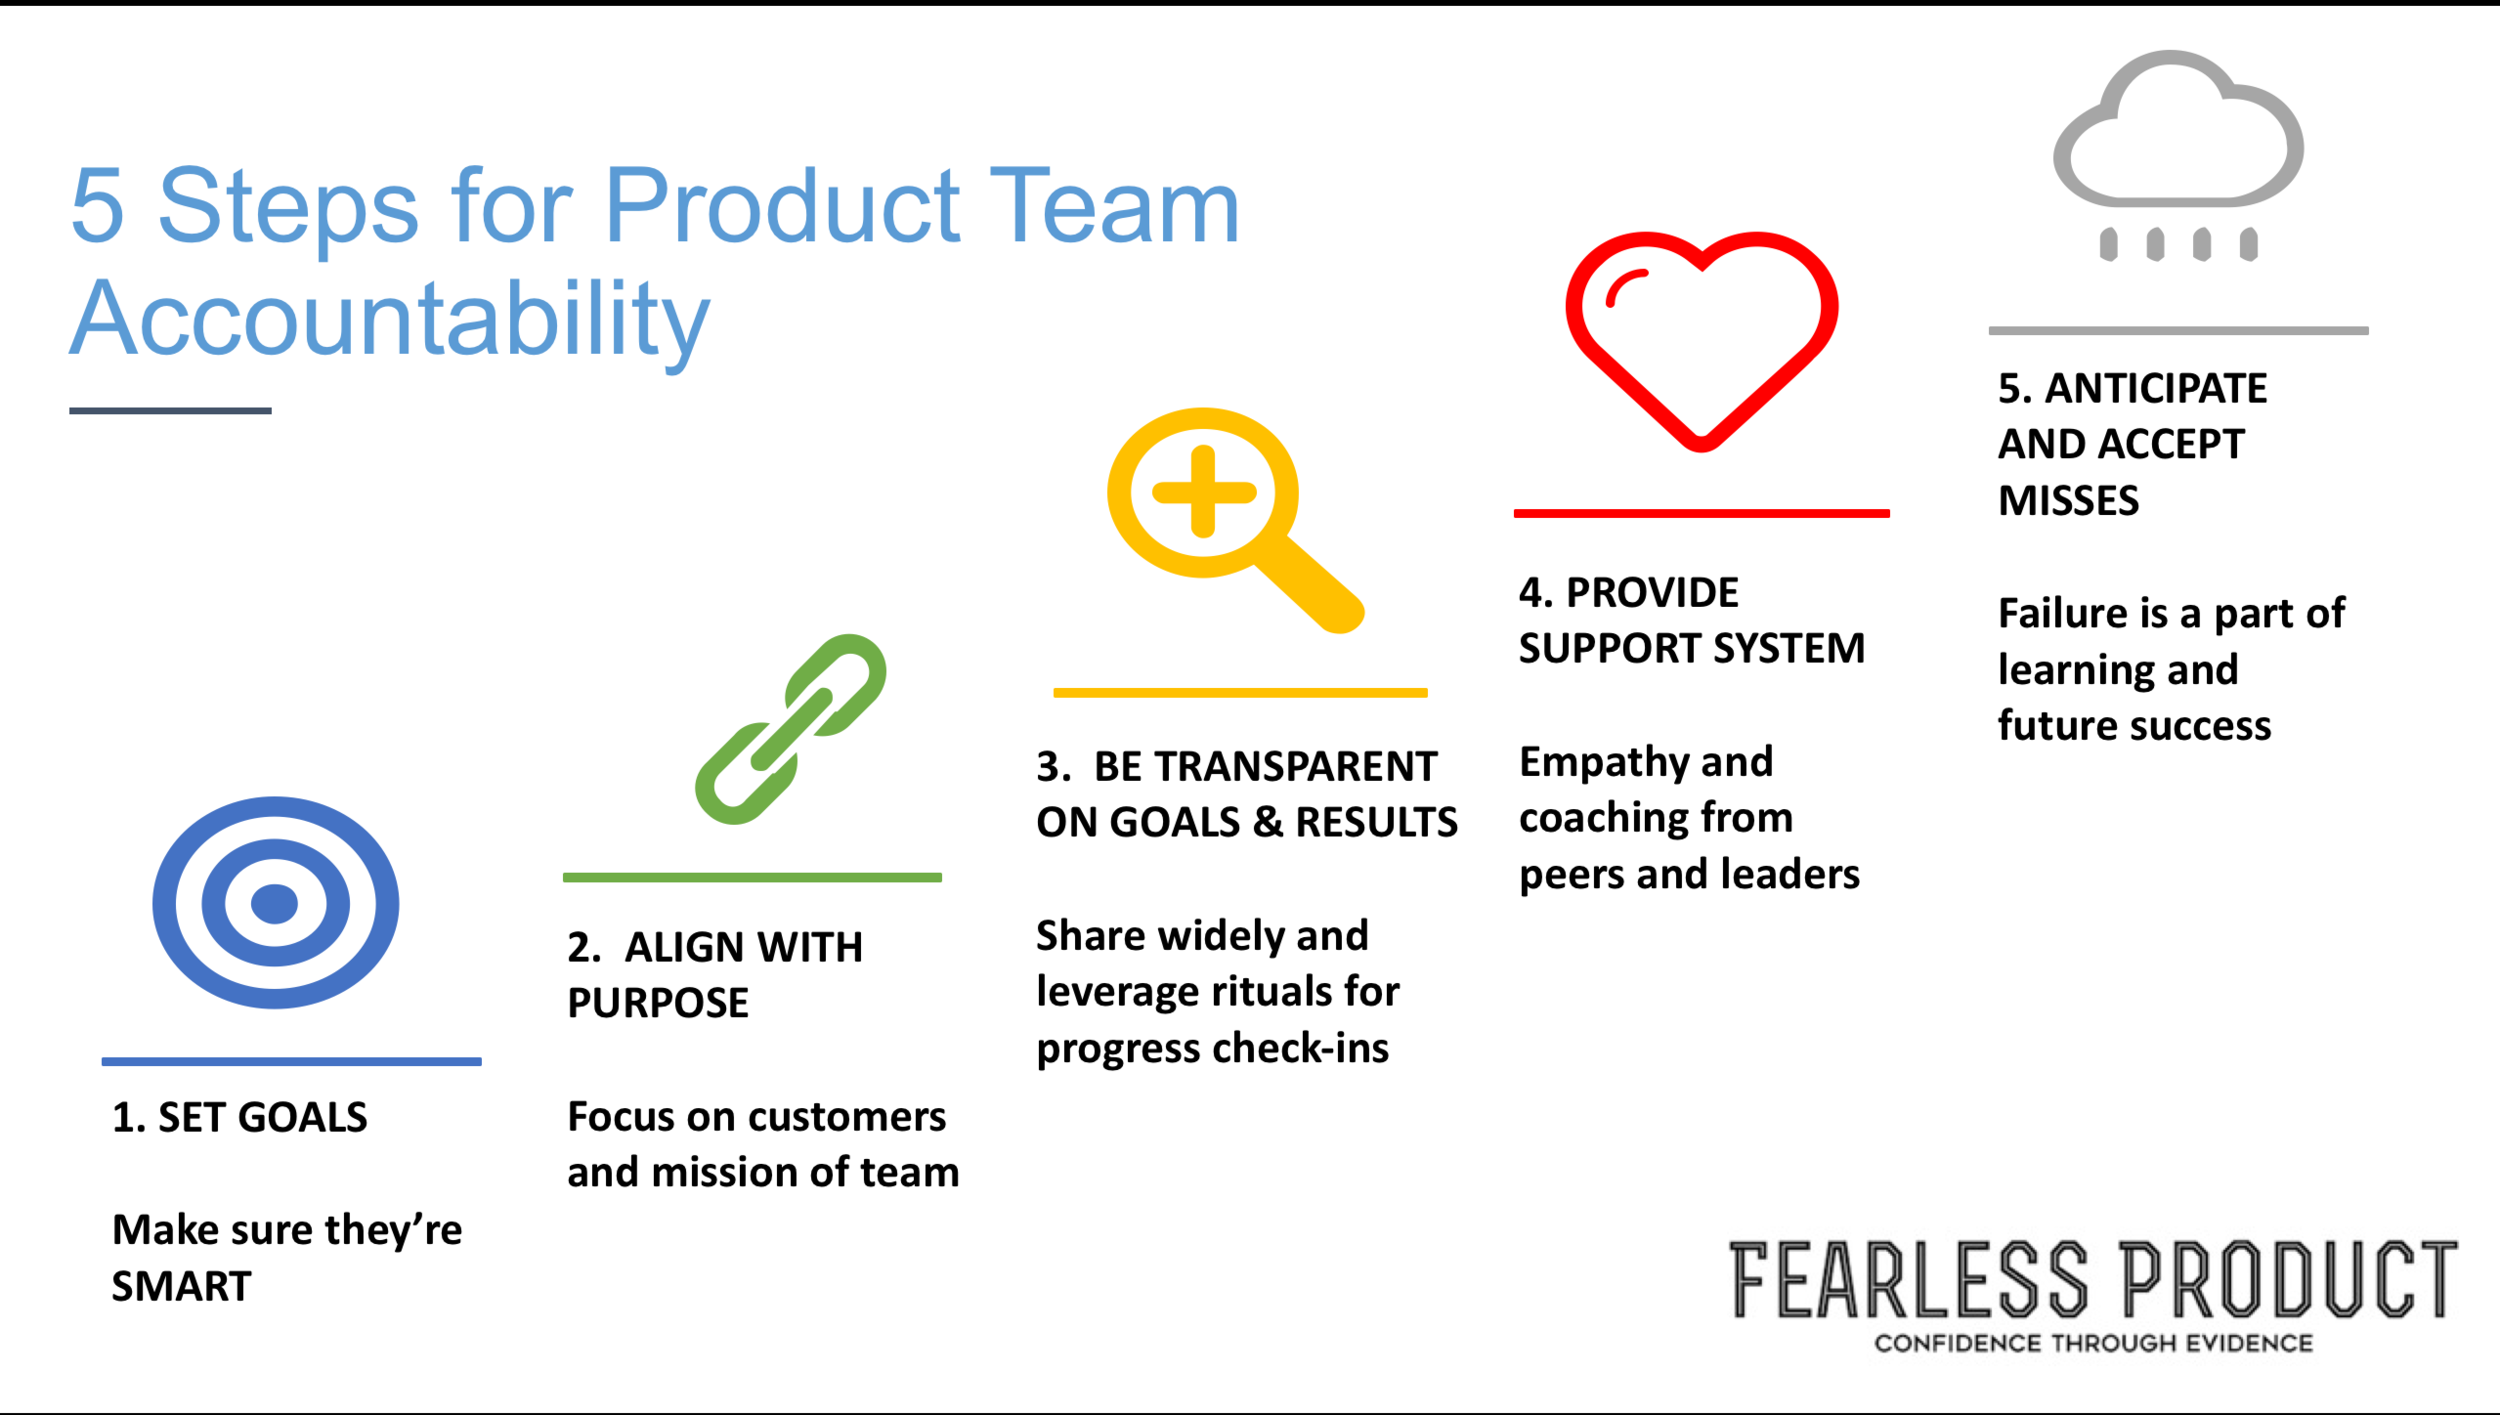 Fearless Product 5 Steps to Accountability for Product Teams.png